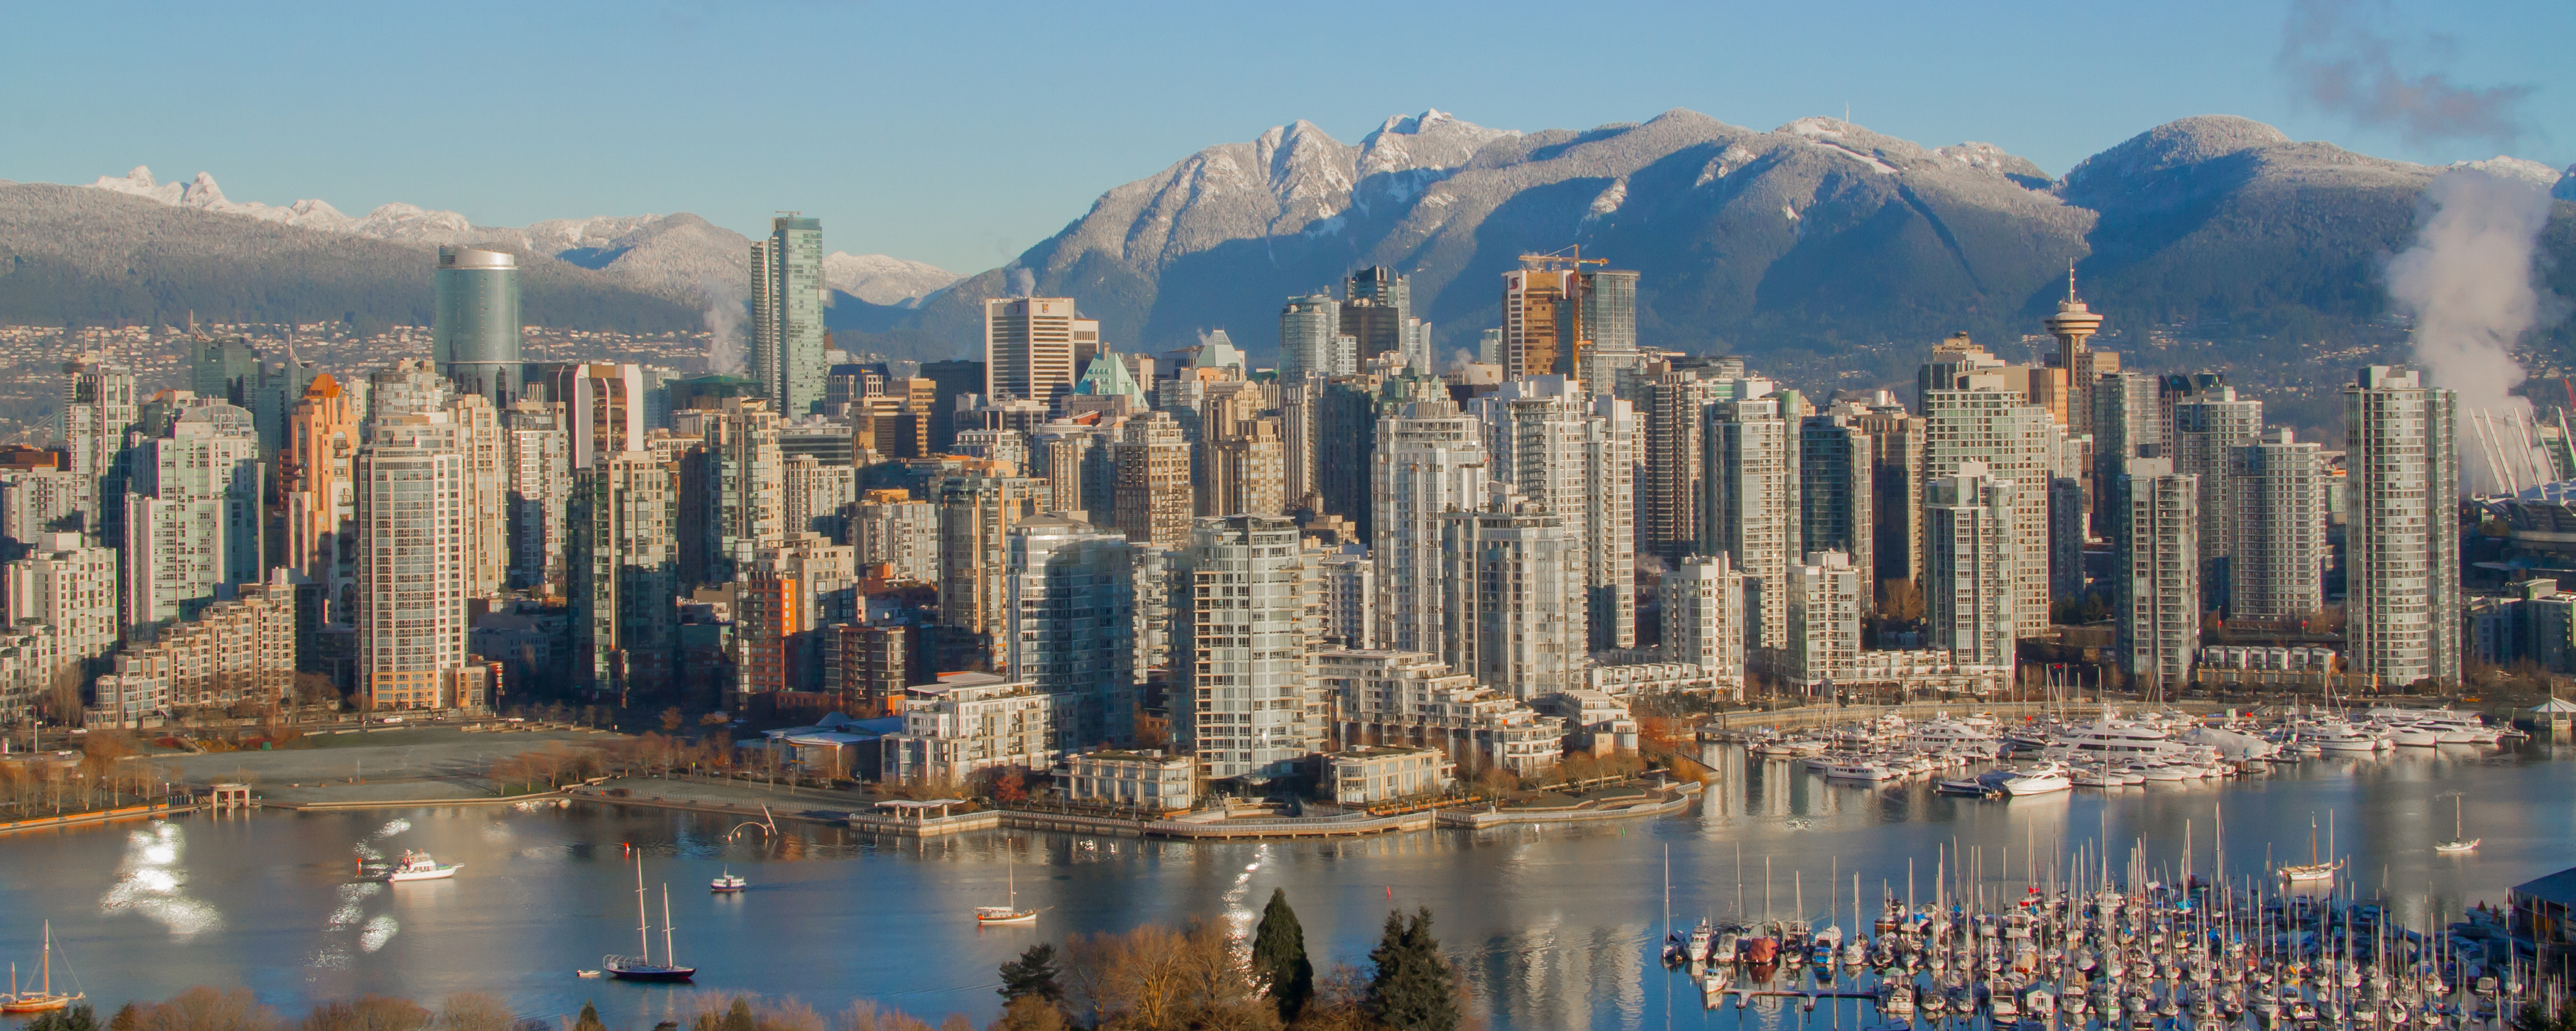 Looking north towards the north shore mountains and False Creek. This is the downtown core of Vancouver B.C. Canada. (PaulDClarke/Thinkstock/PA)